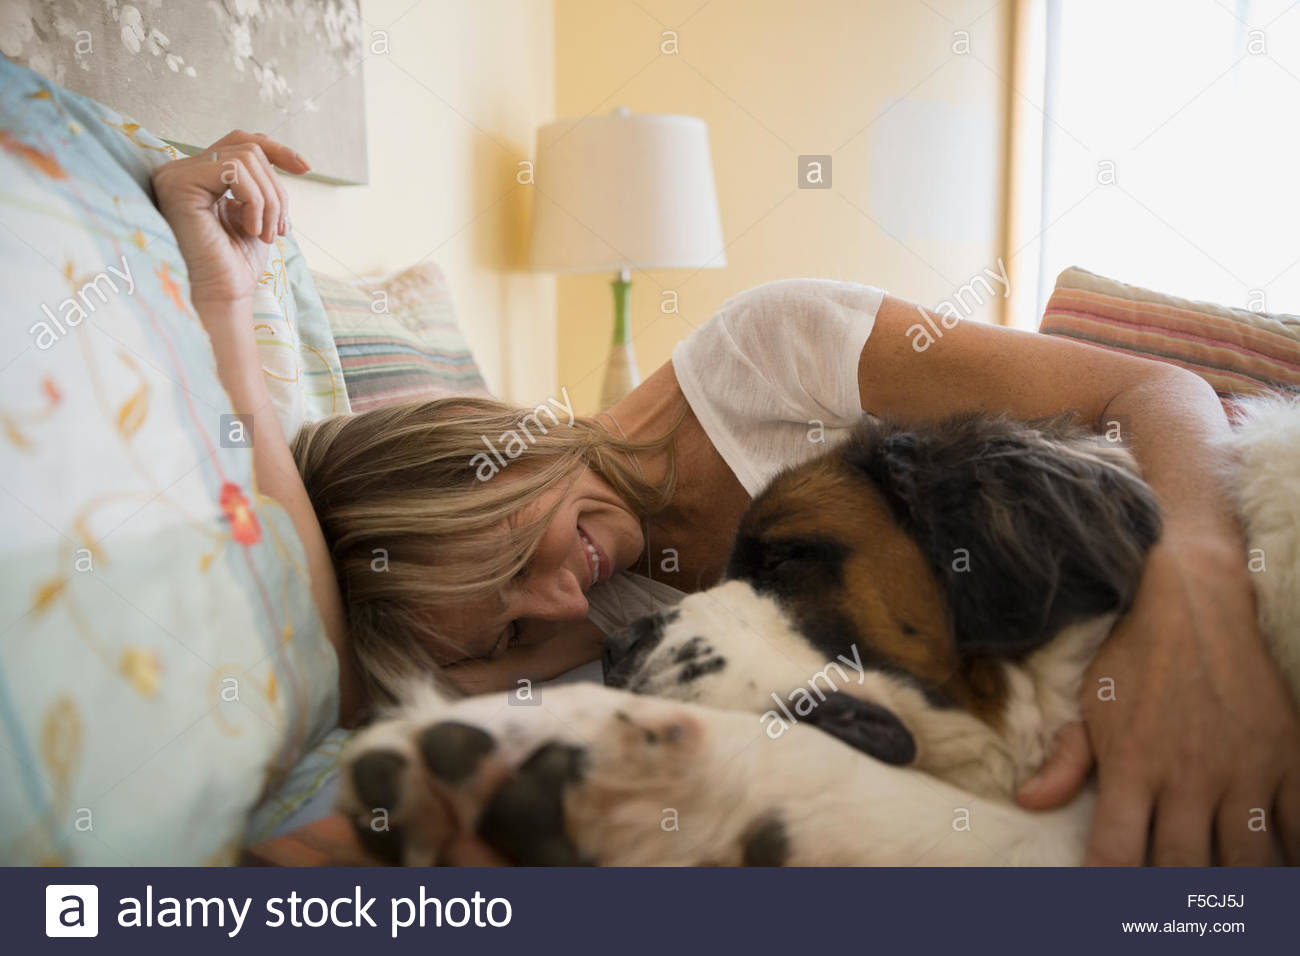 saint bernard women Woof why buy a saint bernard puppy for sale if you can adopt and save a life look at pictures of saint bernard puppies in rescues near you who need a home.